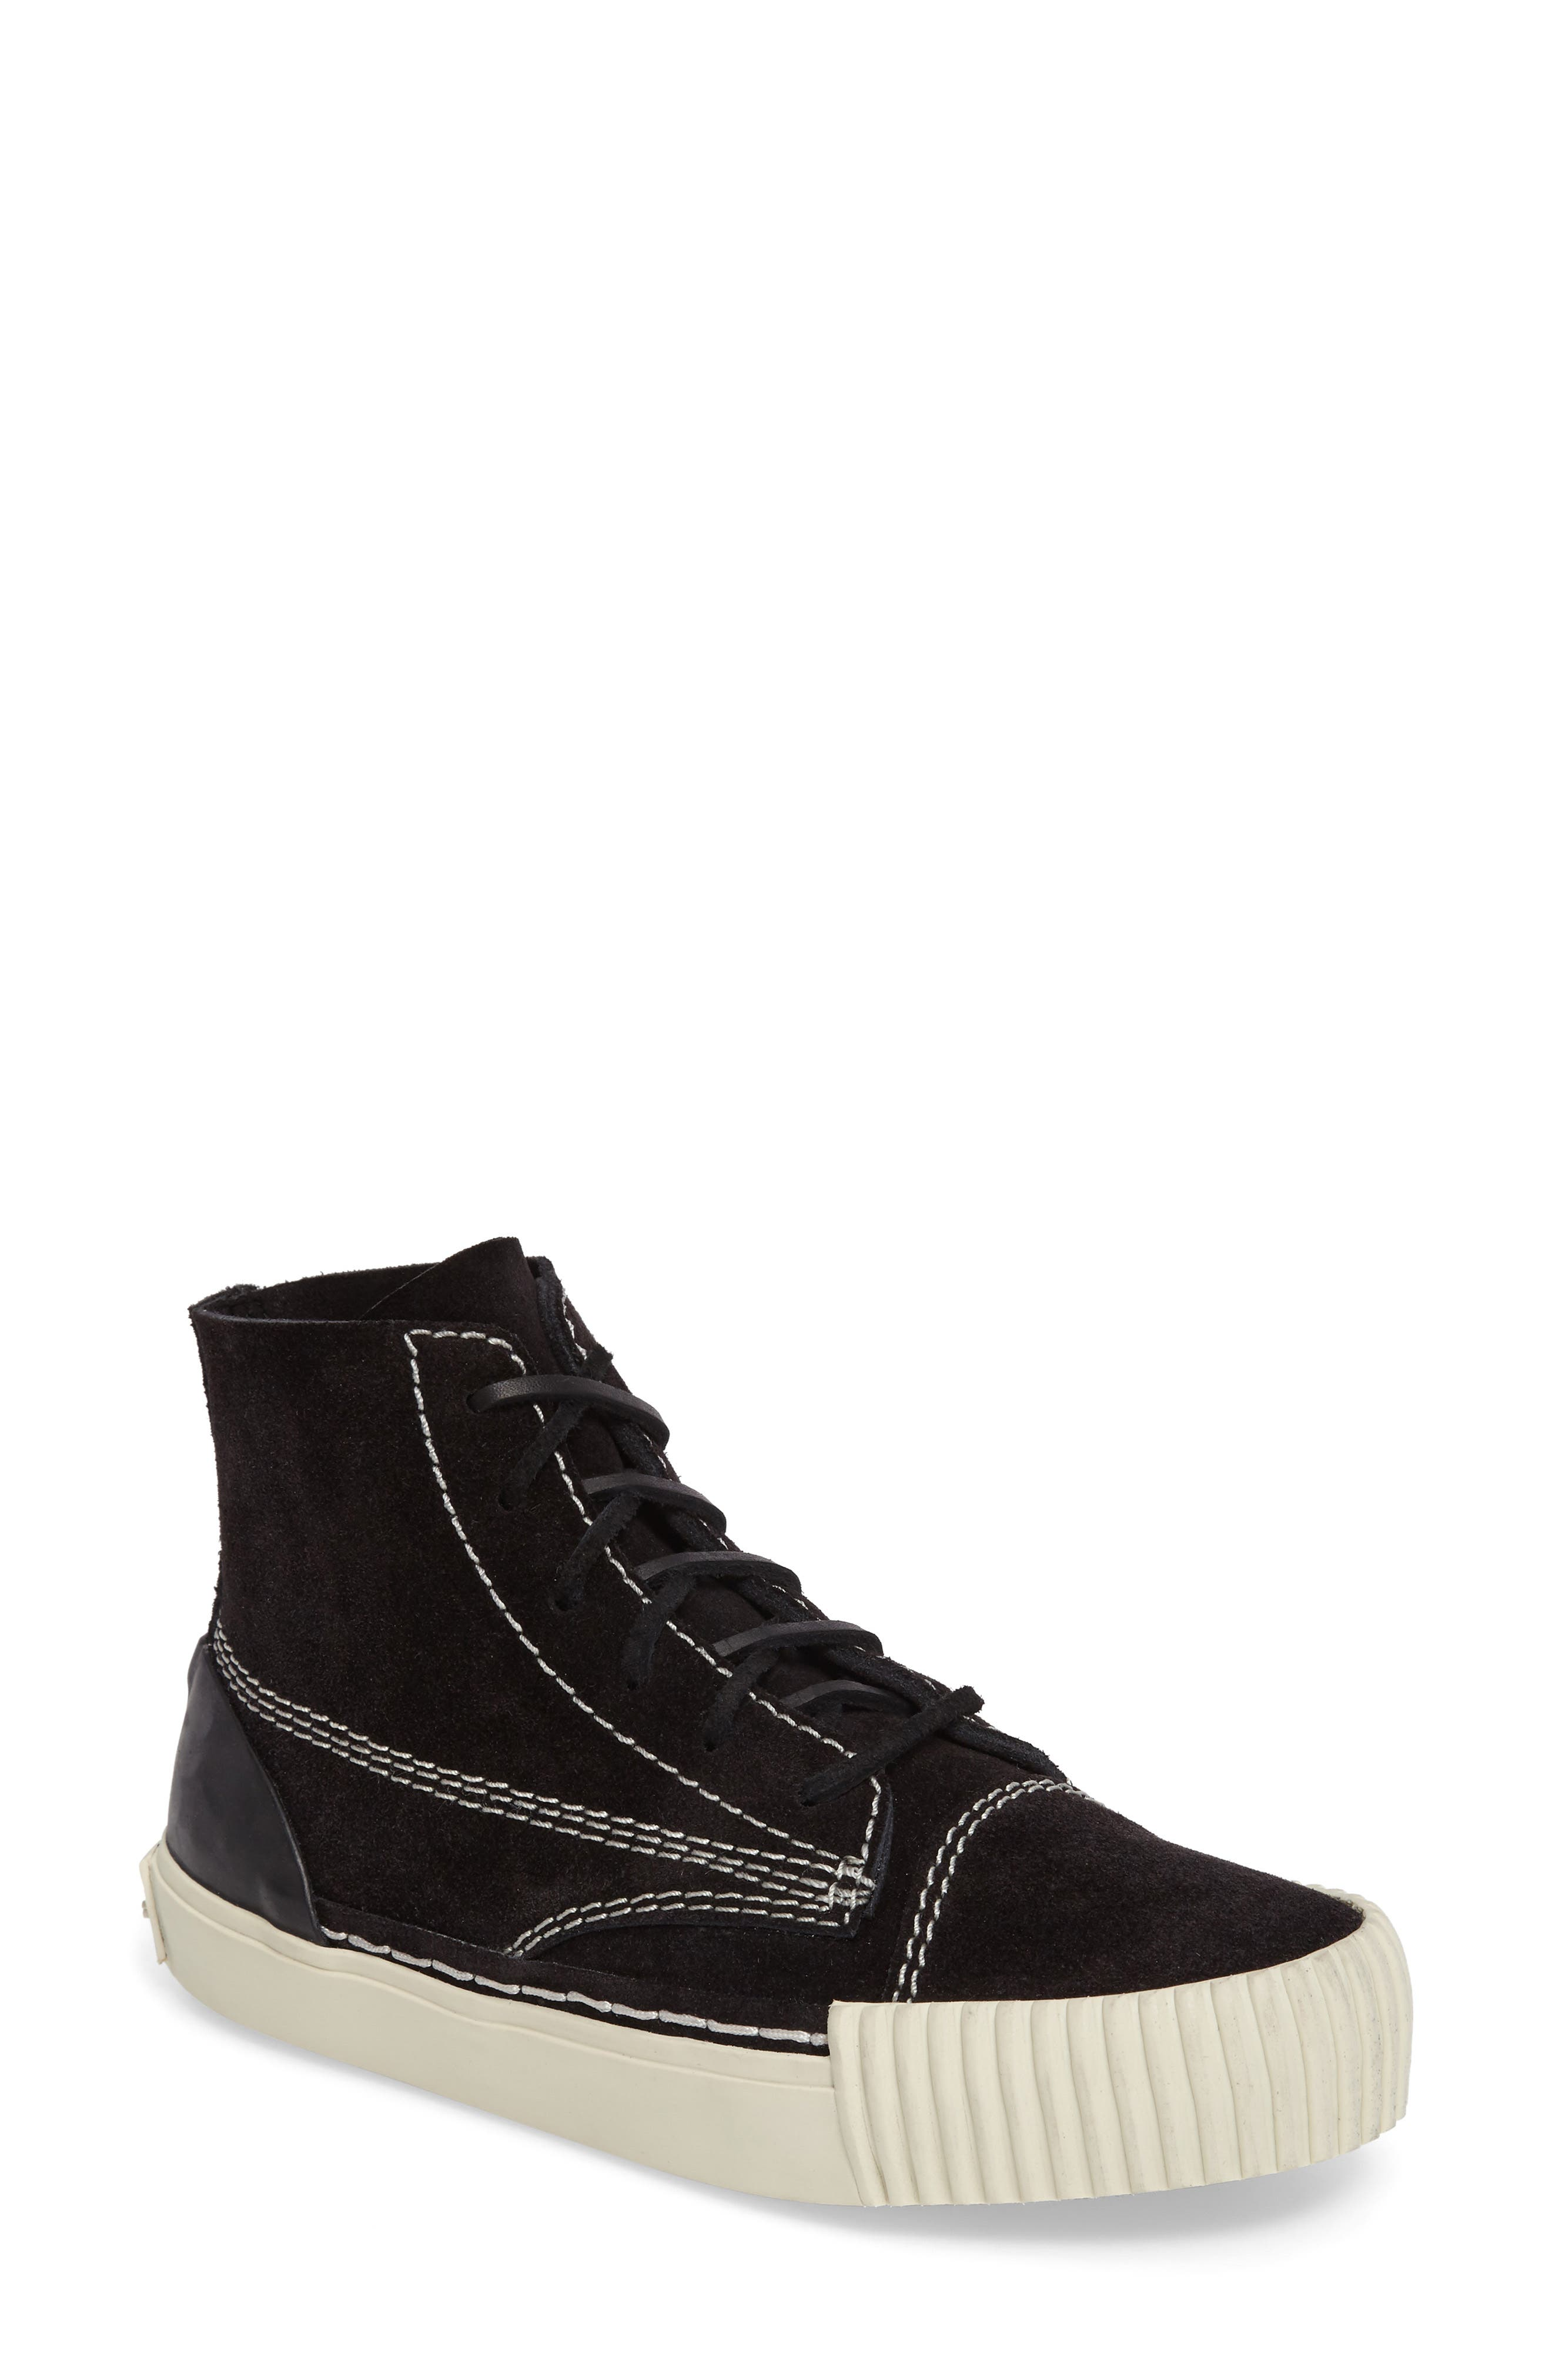 'Perry' Suede High Top Sneaker, Main, color, 001